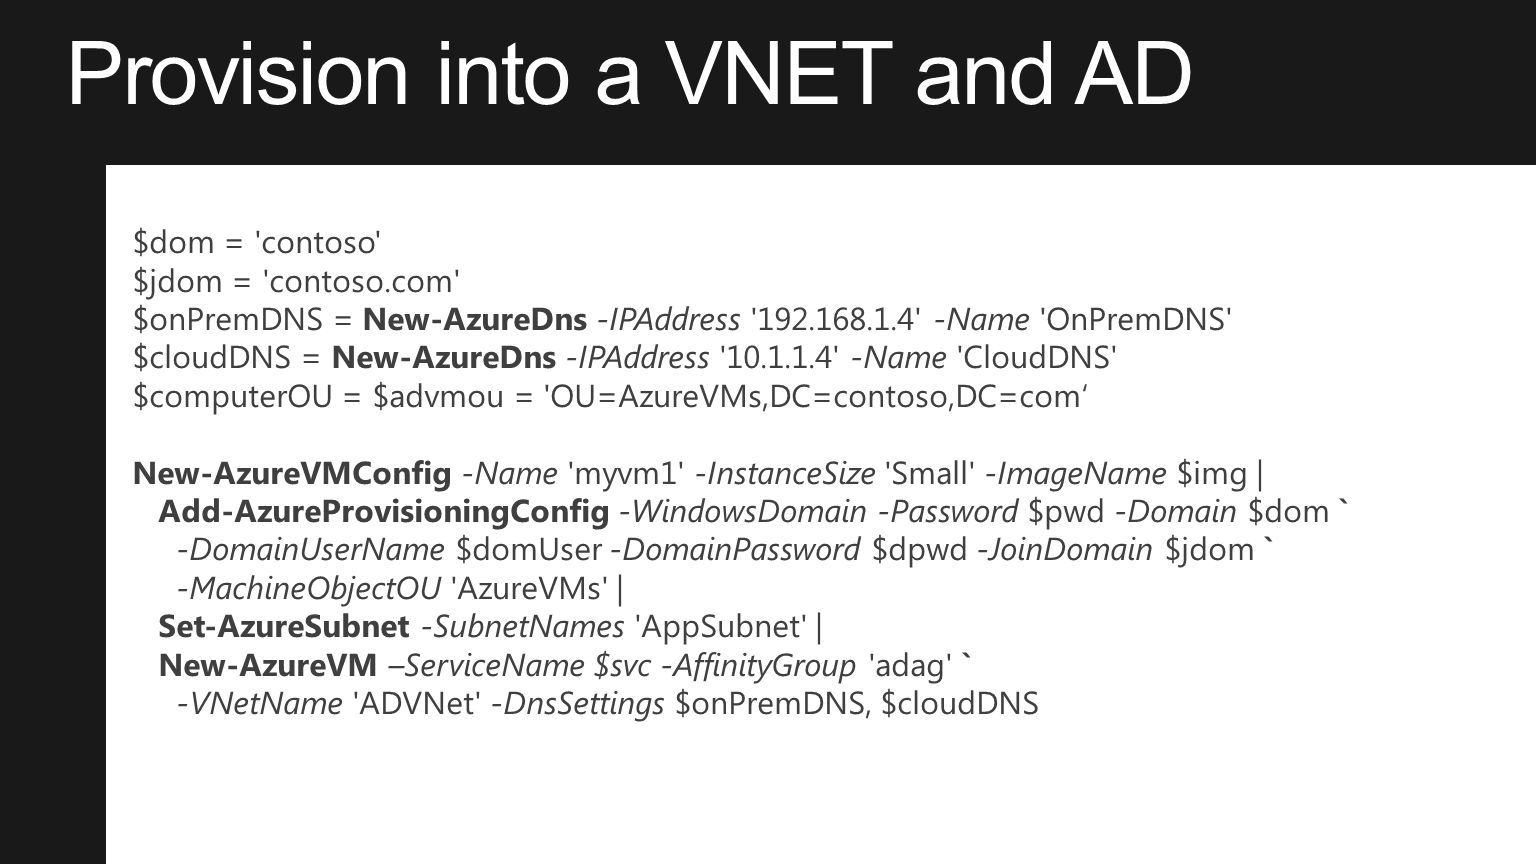 Provision into a VNET and AD